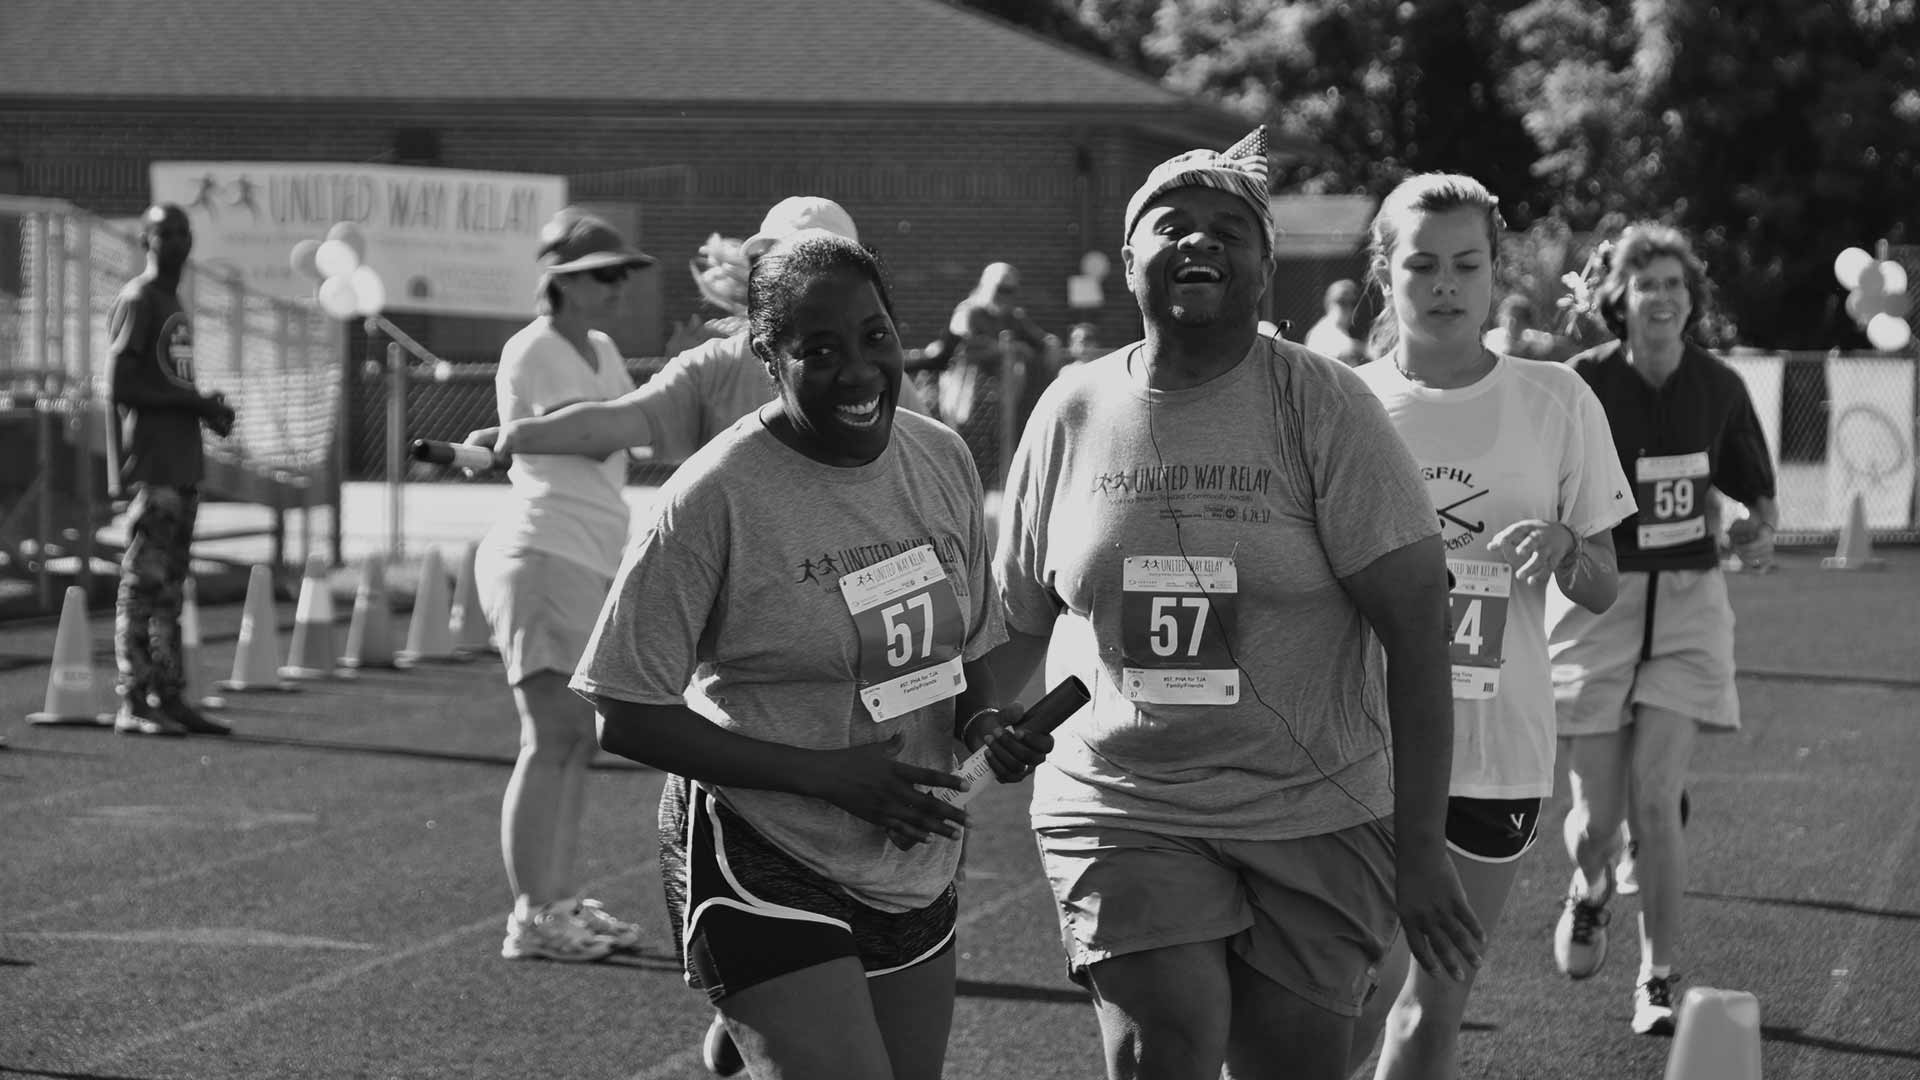 United Way Relay